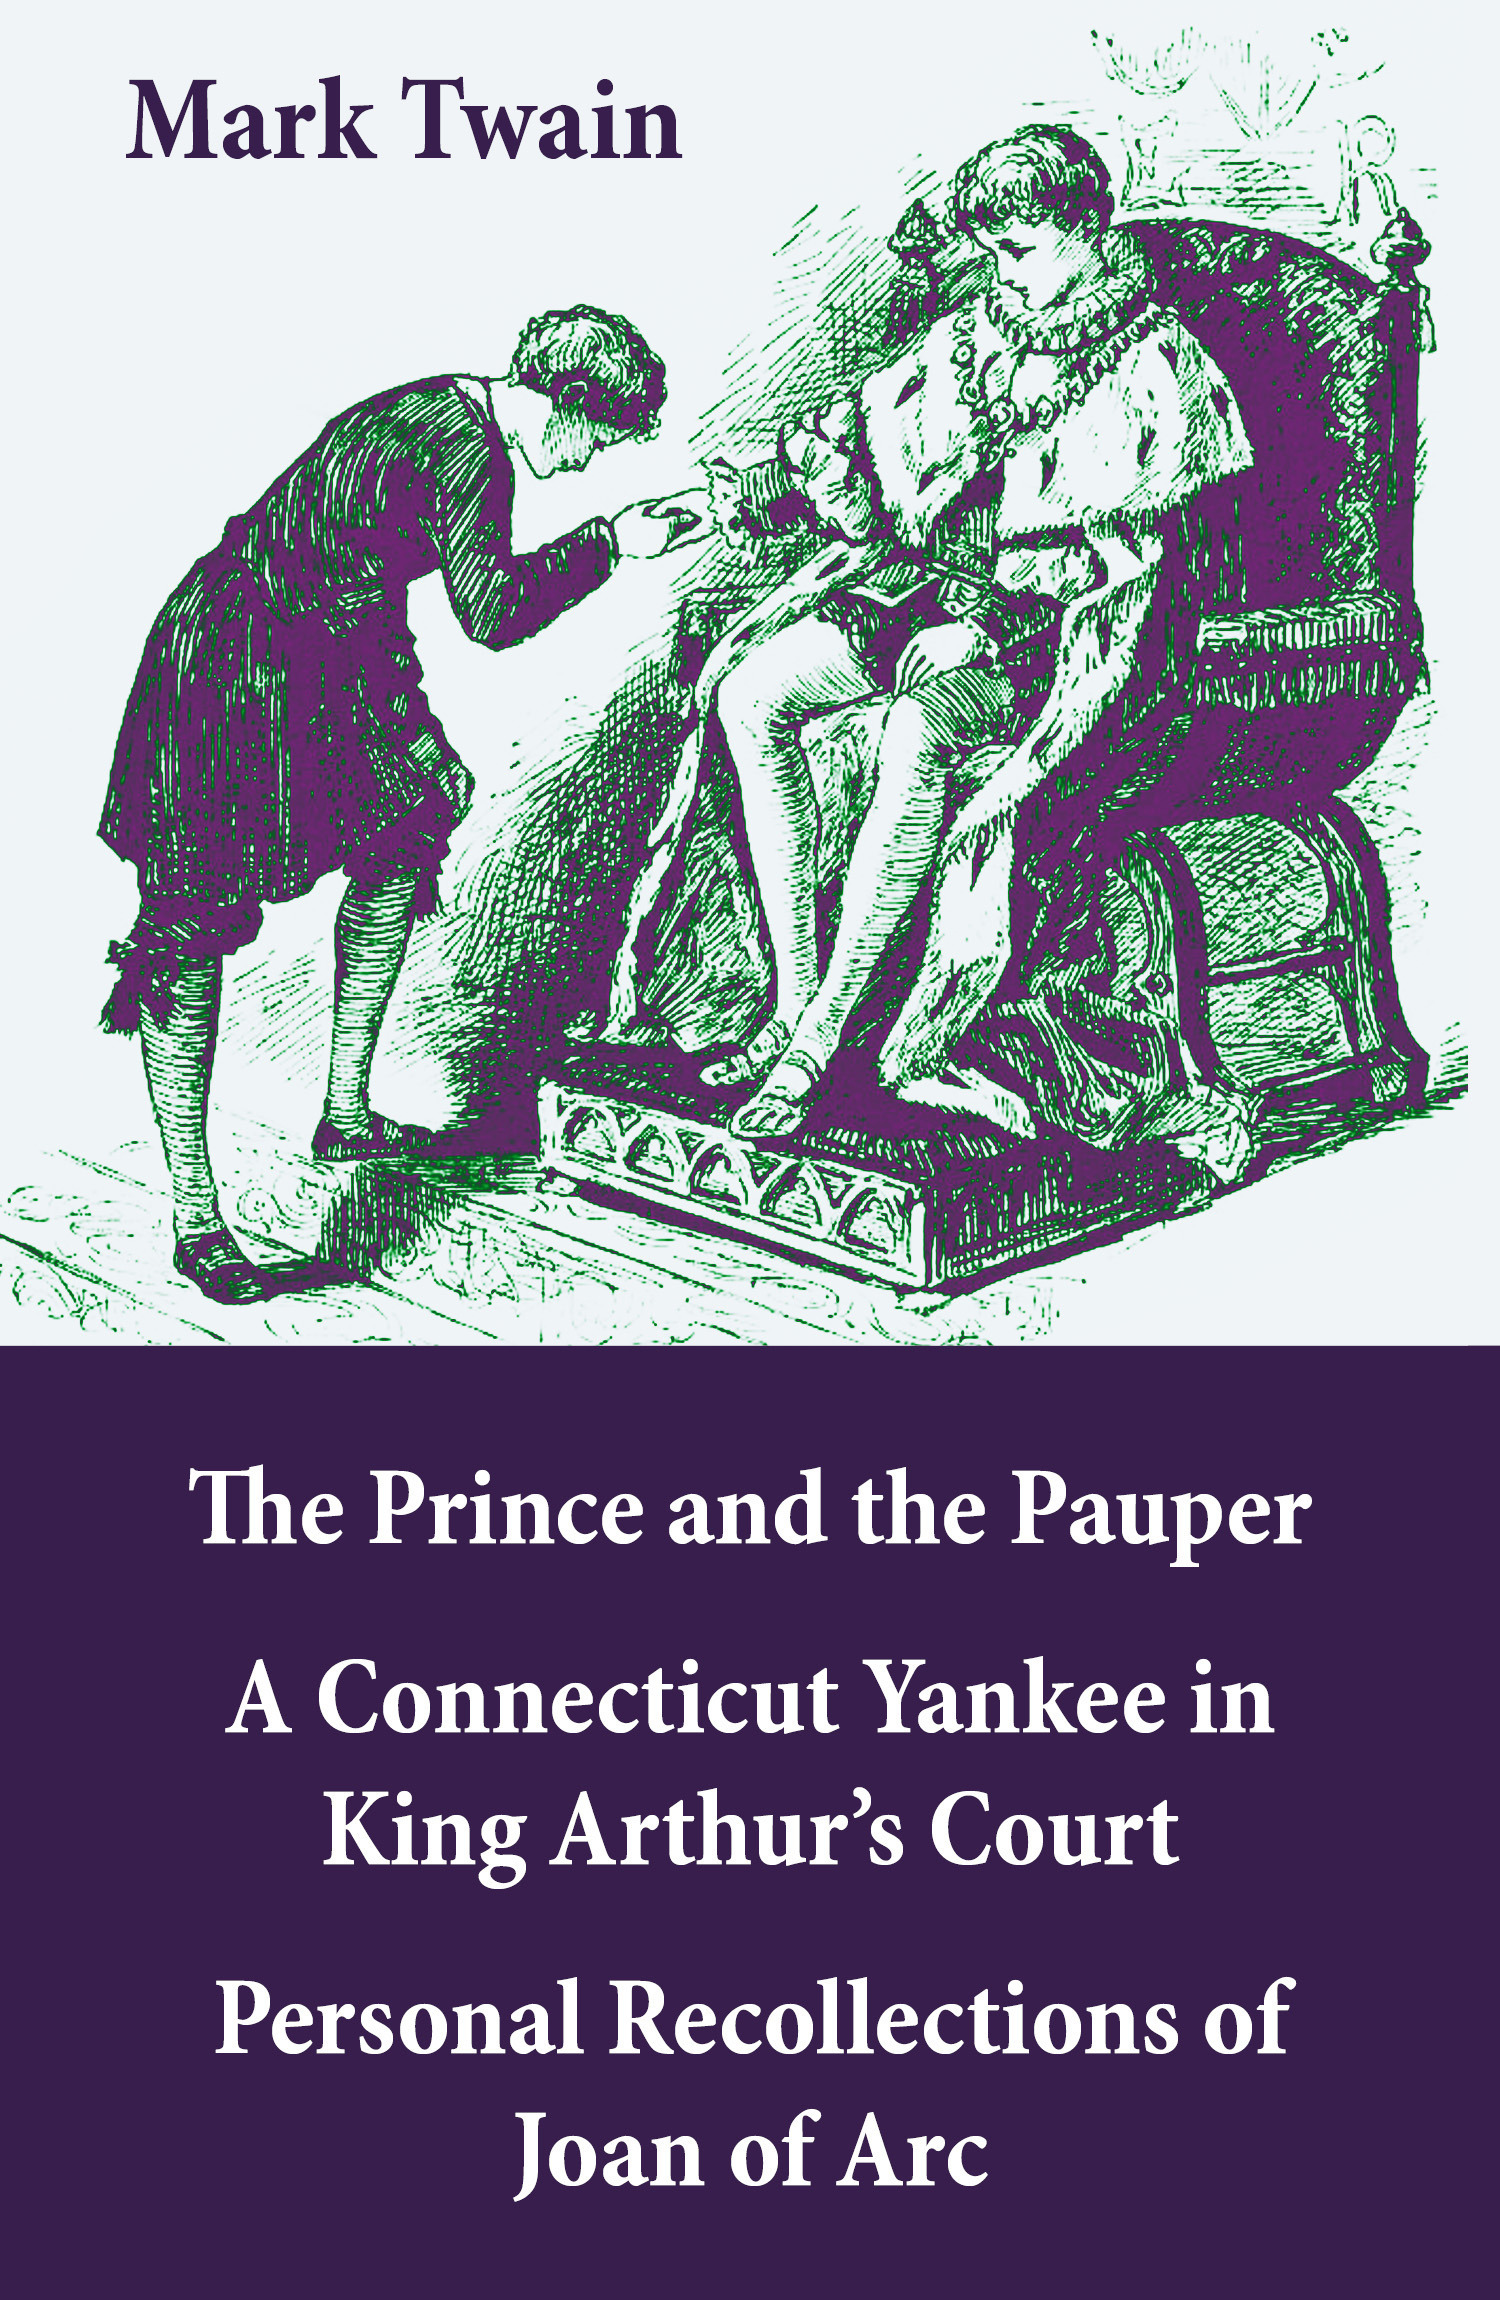 The Prince and the Pauper + A Connecticut Yankee in King Arthur´s Court + Personal Recollections of Joan of Arc